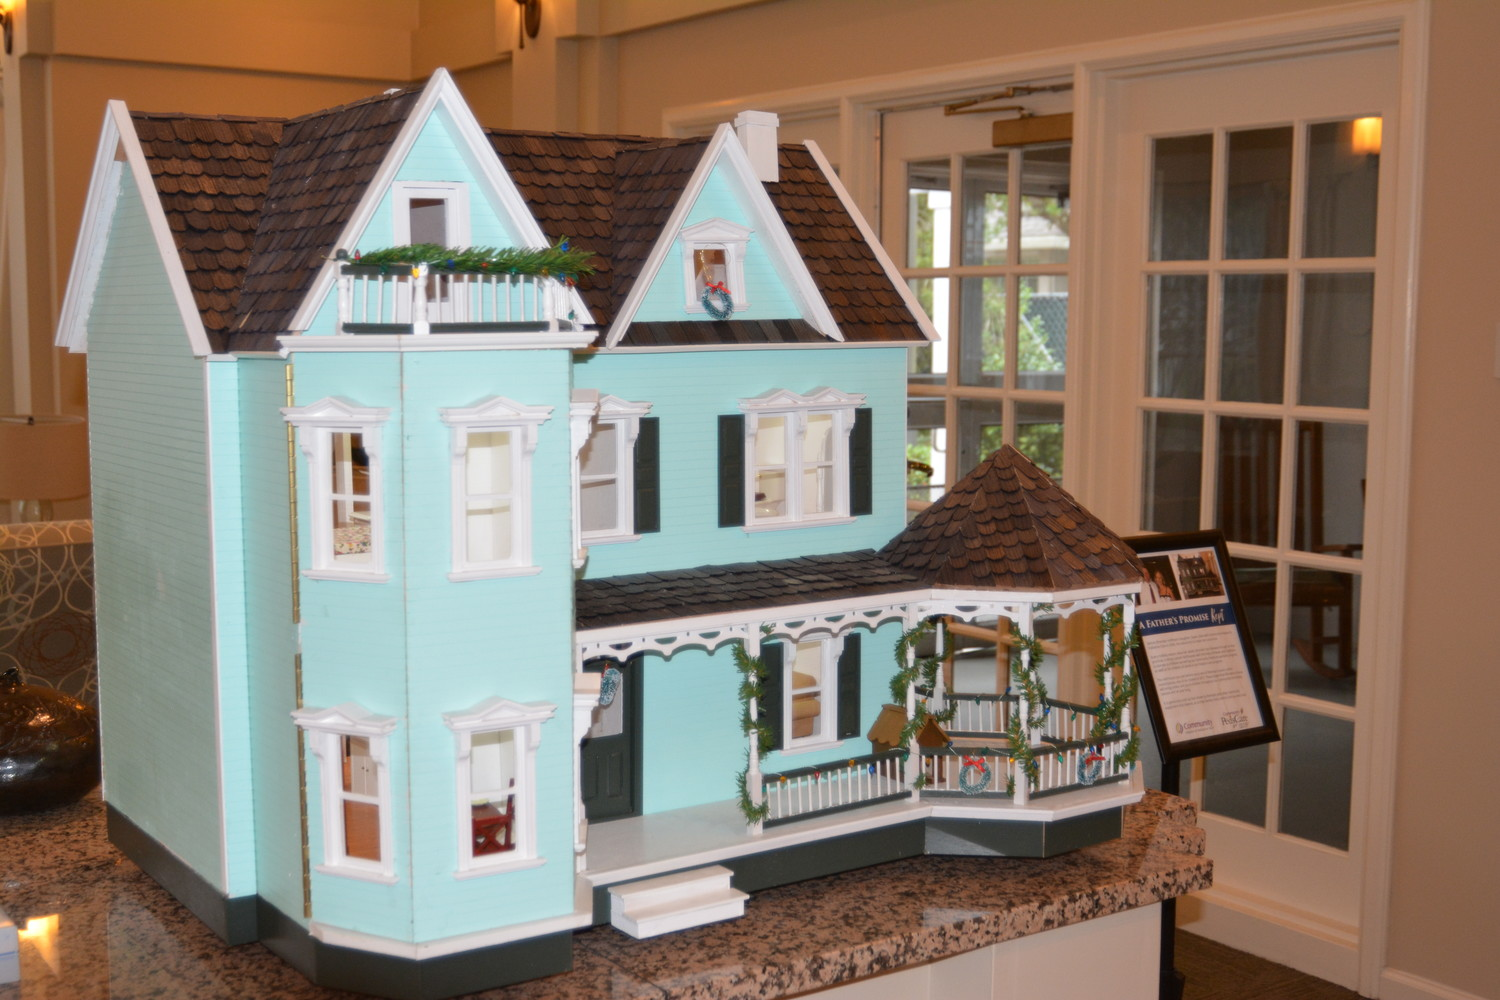 One of Hoffman's doll houses is displayed alongside his story in the lobby of Community Hospice & Palliative Care's Earl B. Hadlow Center for Caring in Jacksonville.